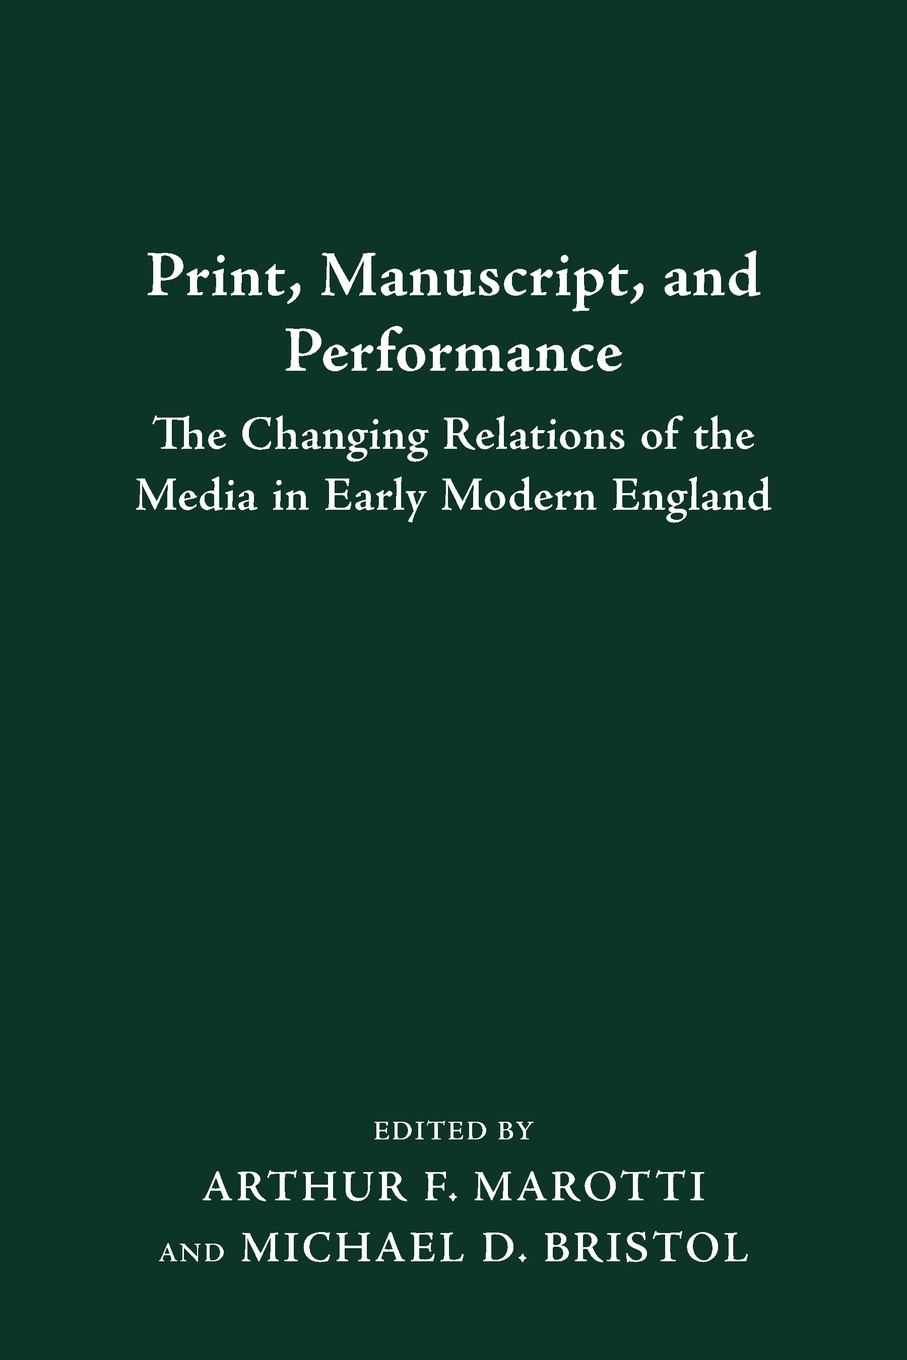 ARTHUR F. MAROTTI PRINT MANUSCRIPT PERFORMANCE. THE CHANGING RELATIONS OF THE MEDIA IN EARLY MODERN ENGLAND matthew j smith performance and religion in early modern england stage cathedral wagon street